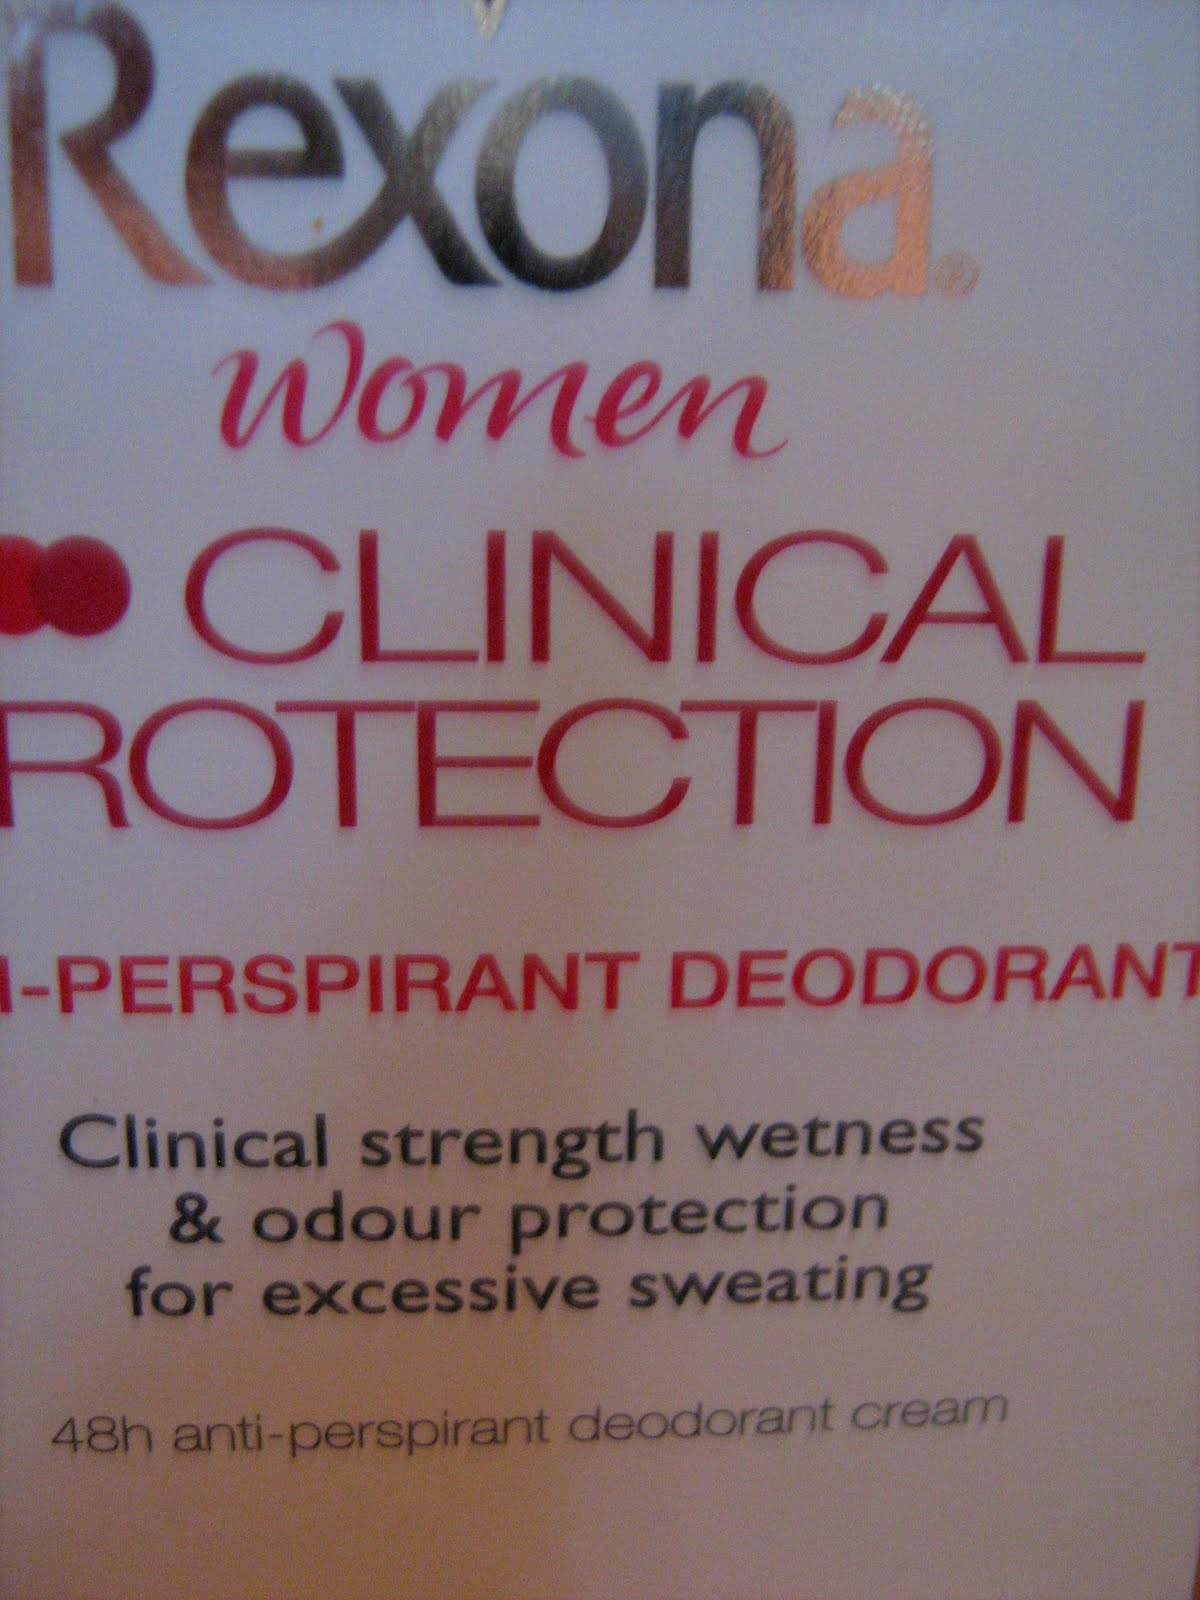 rexona clinical protection instructions